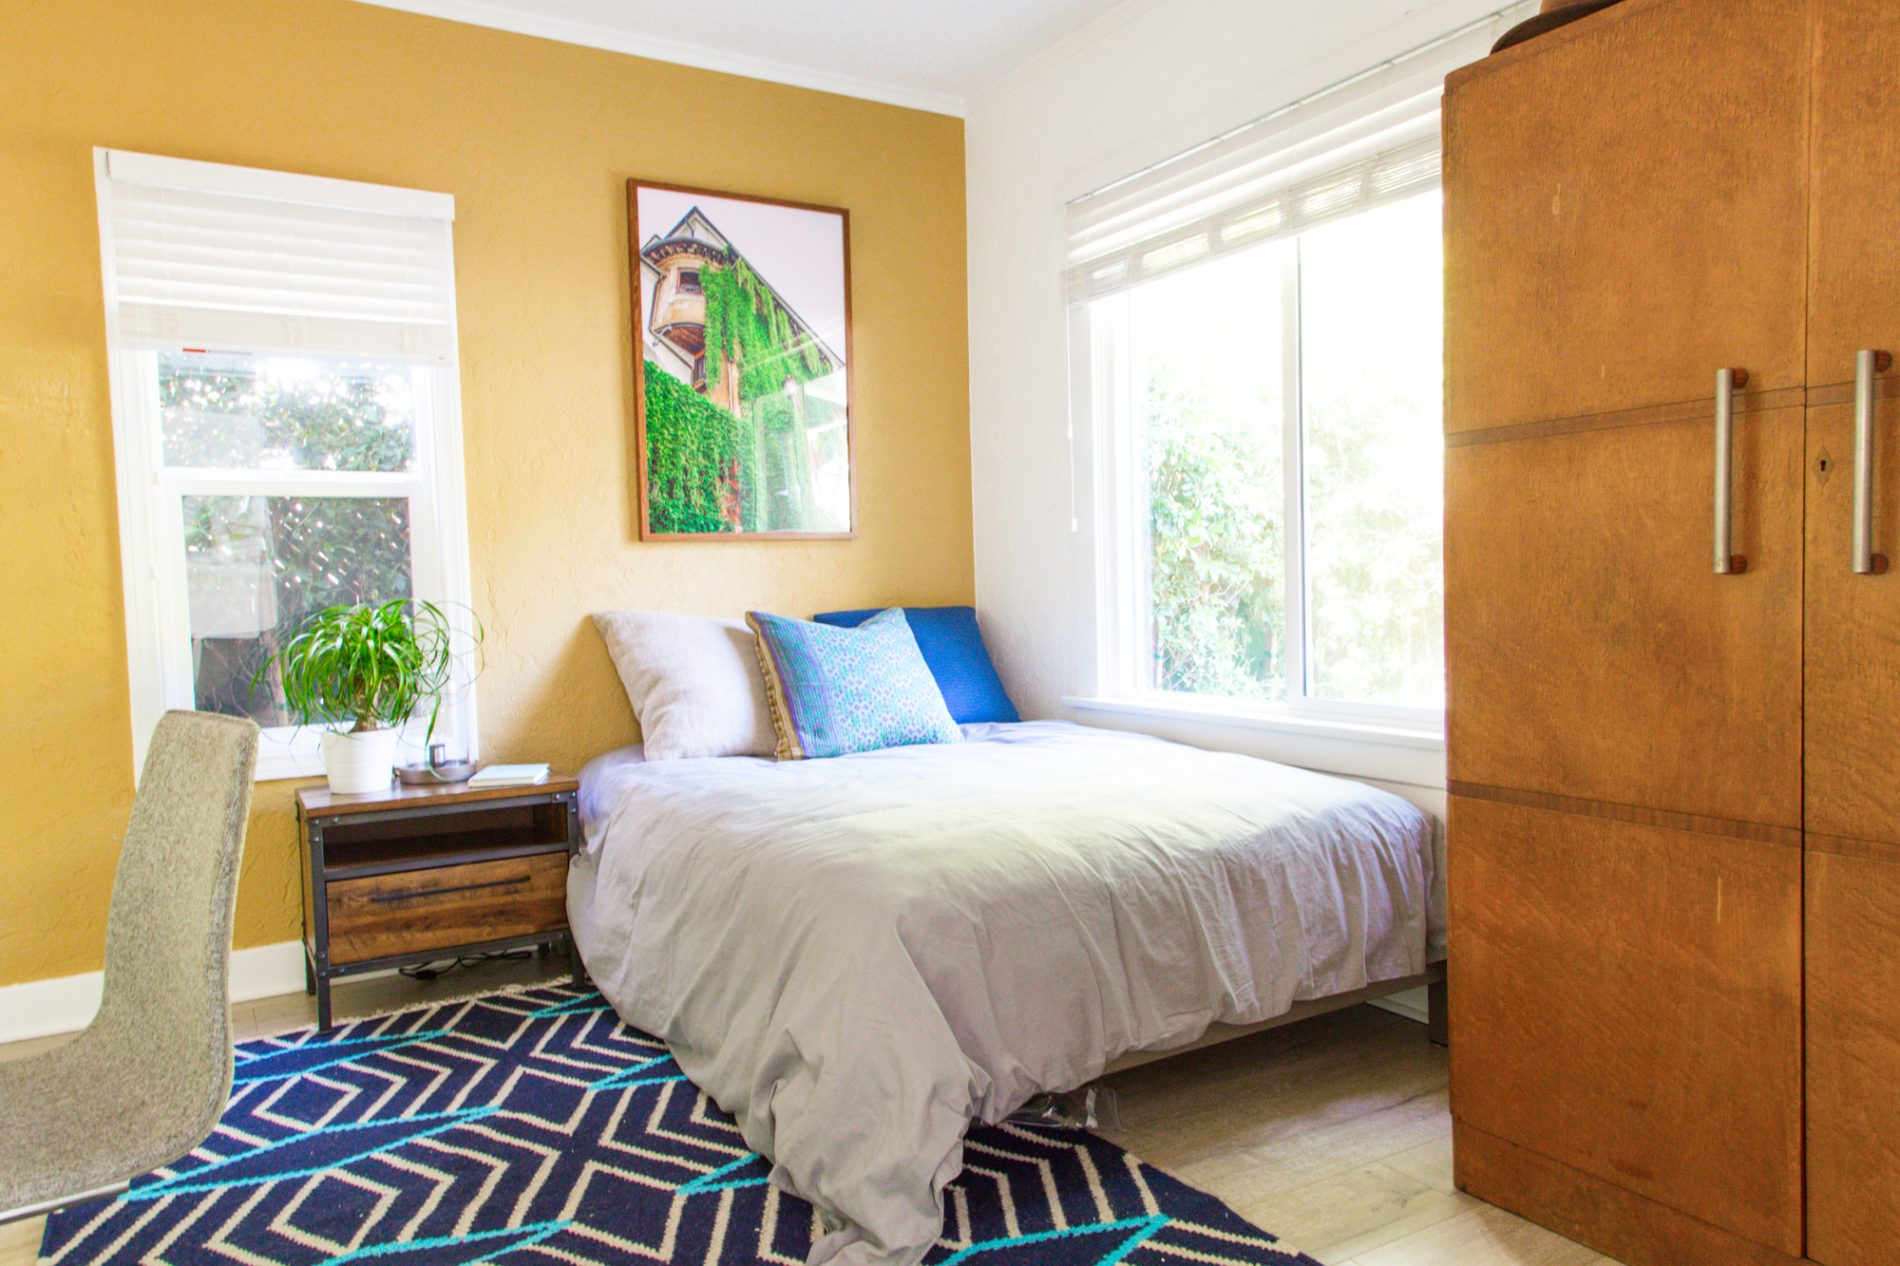 recover-integrity-sober-living-bedroom